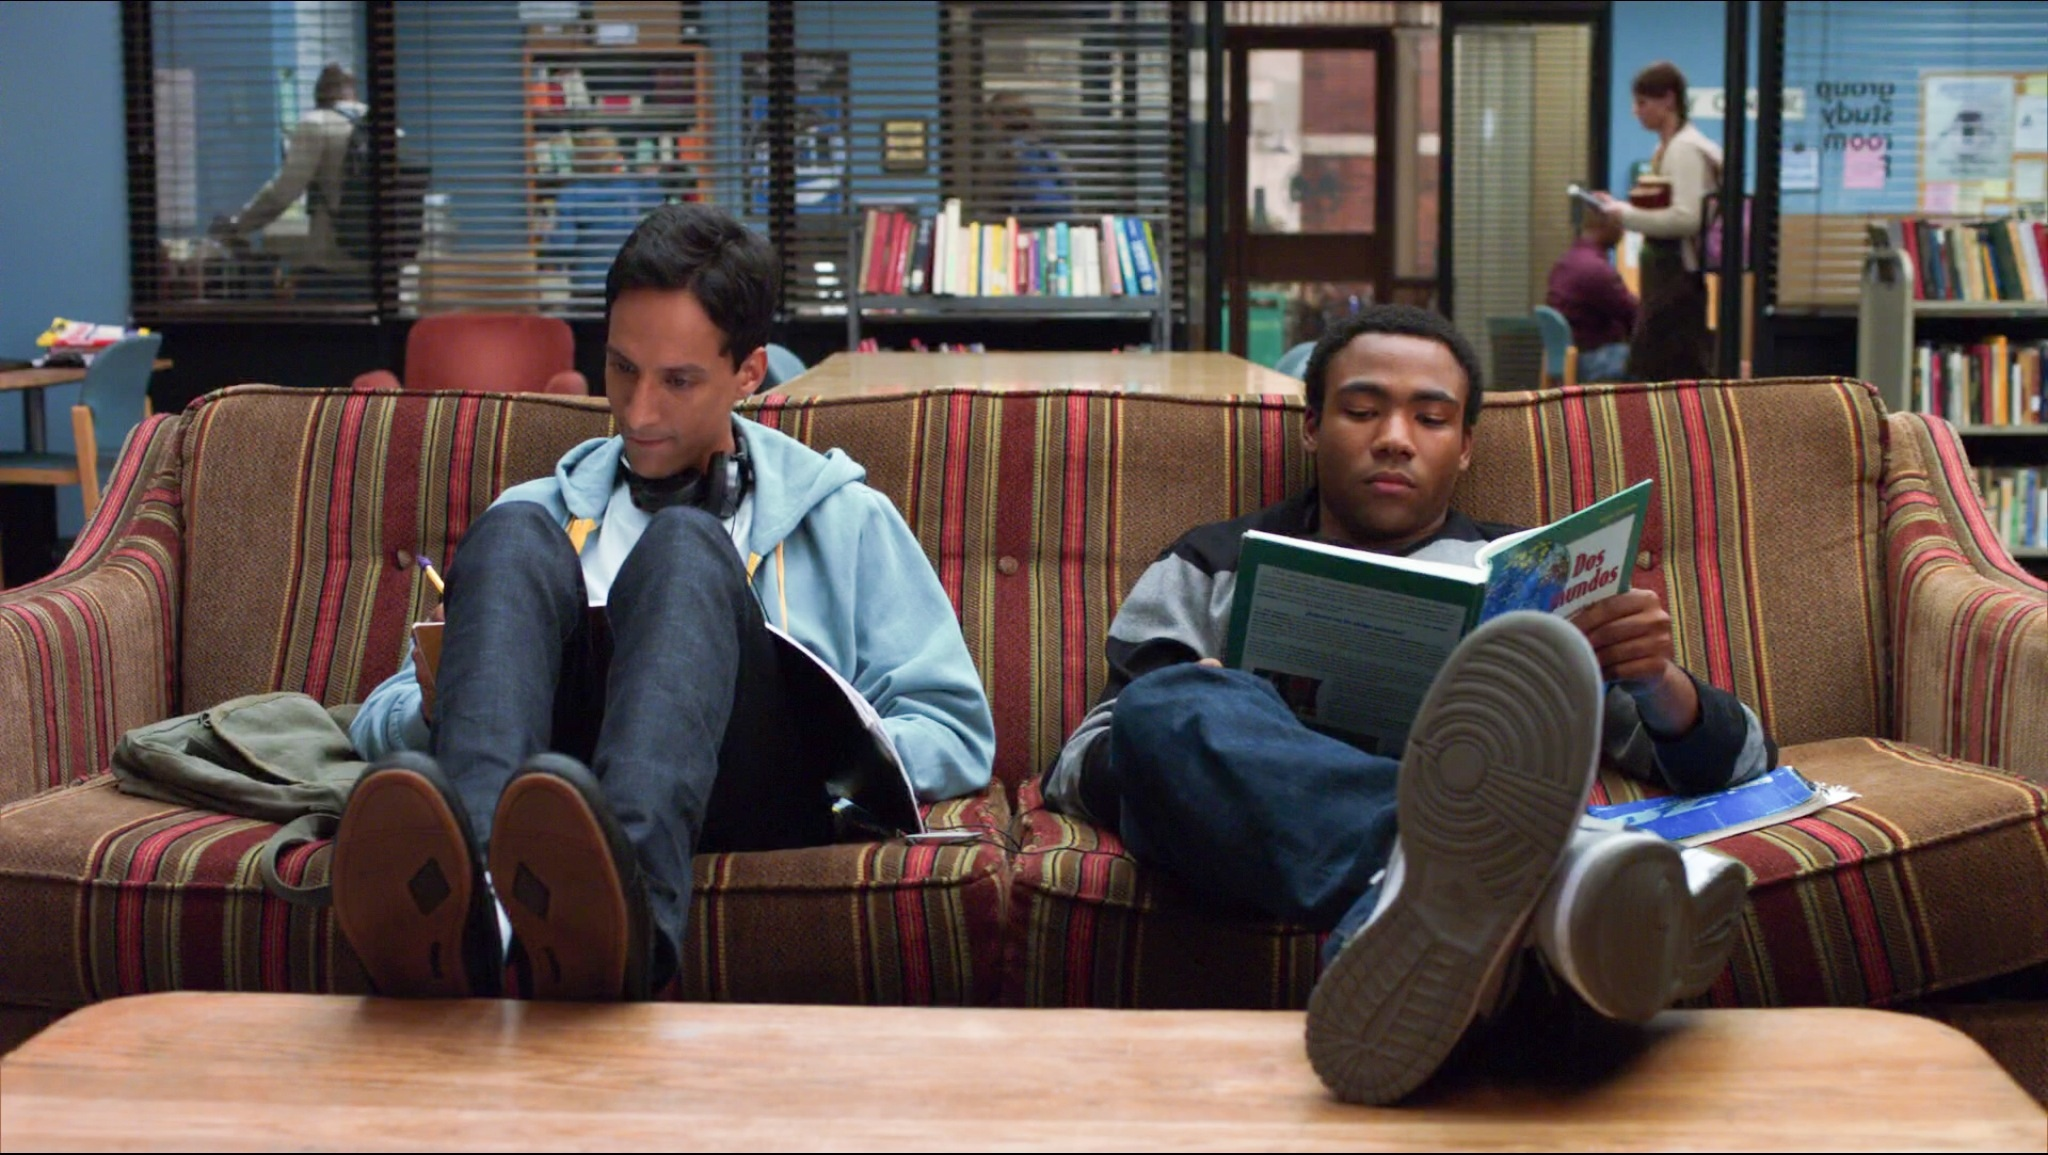 Community: Troy and Abed